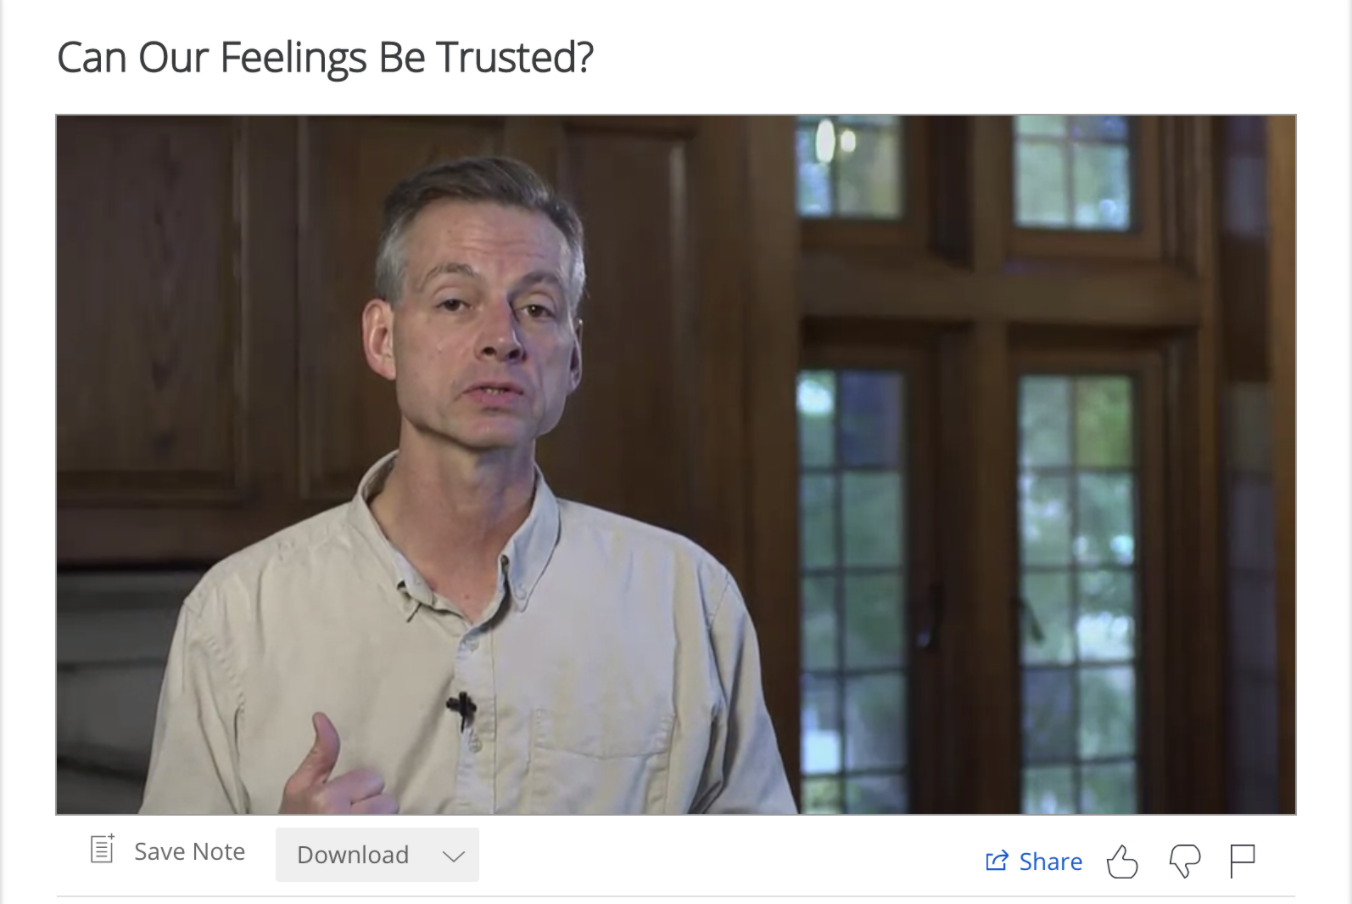 Can Our Feelings Be Trusted